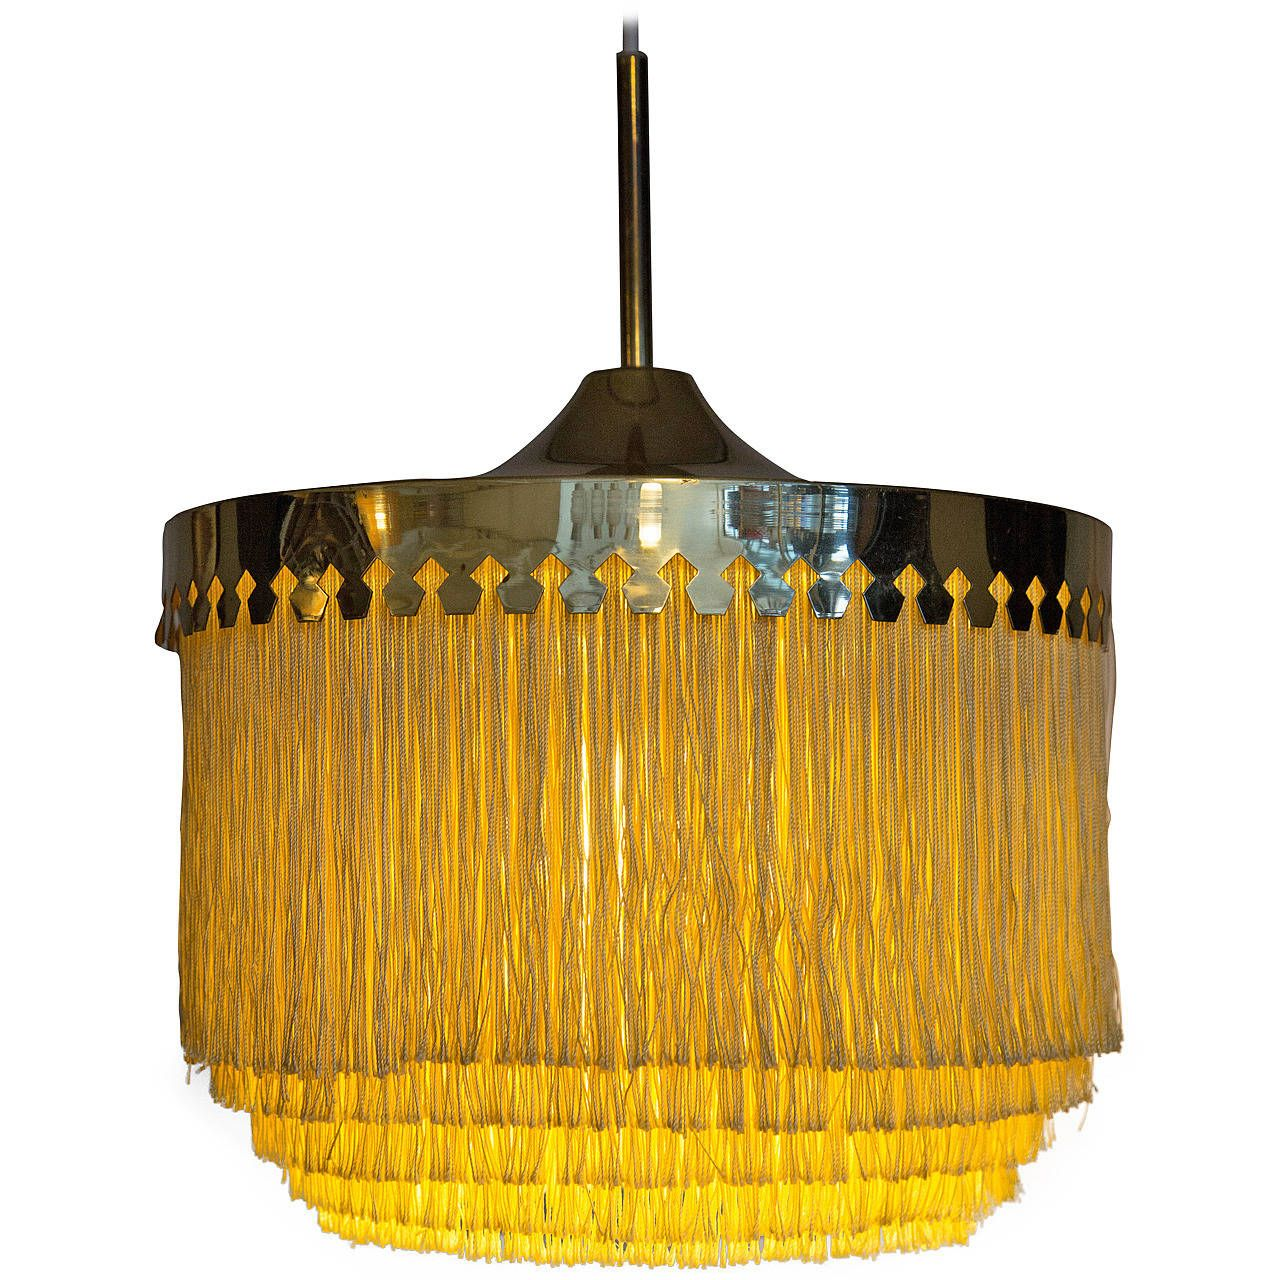 Hans agne jakobsson brass scandinavian lamp scandinavian lamps lights arubaitofo Image collections